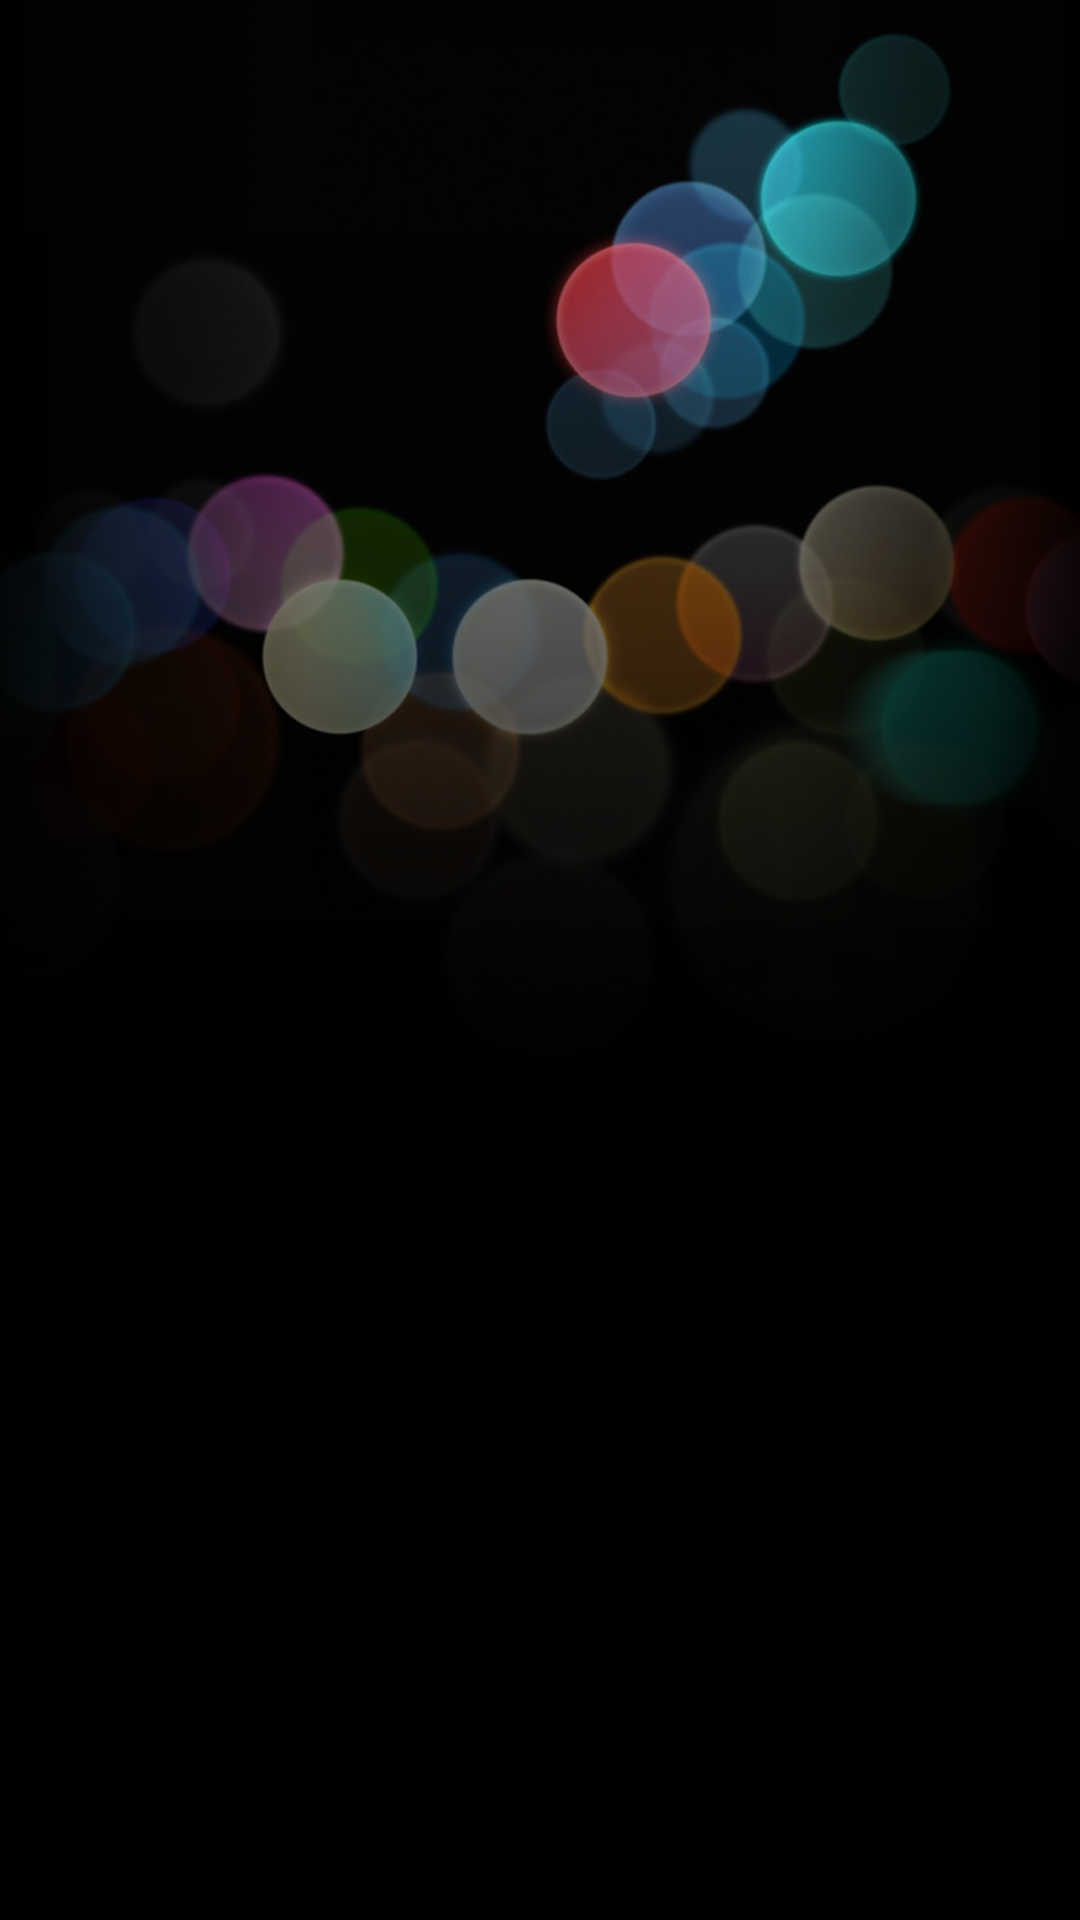 iphone home screen wallpaper september 7 apple event wallpapers quot see you on the 7th quot 15301